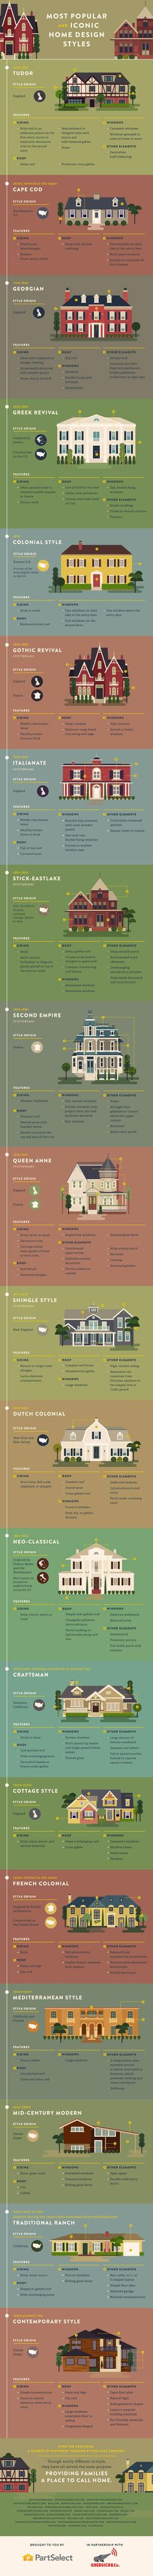 infographic learn the history behind modernist design